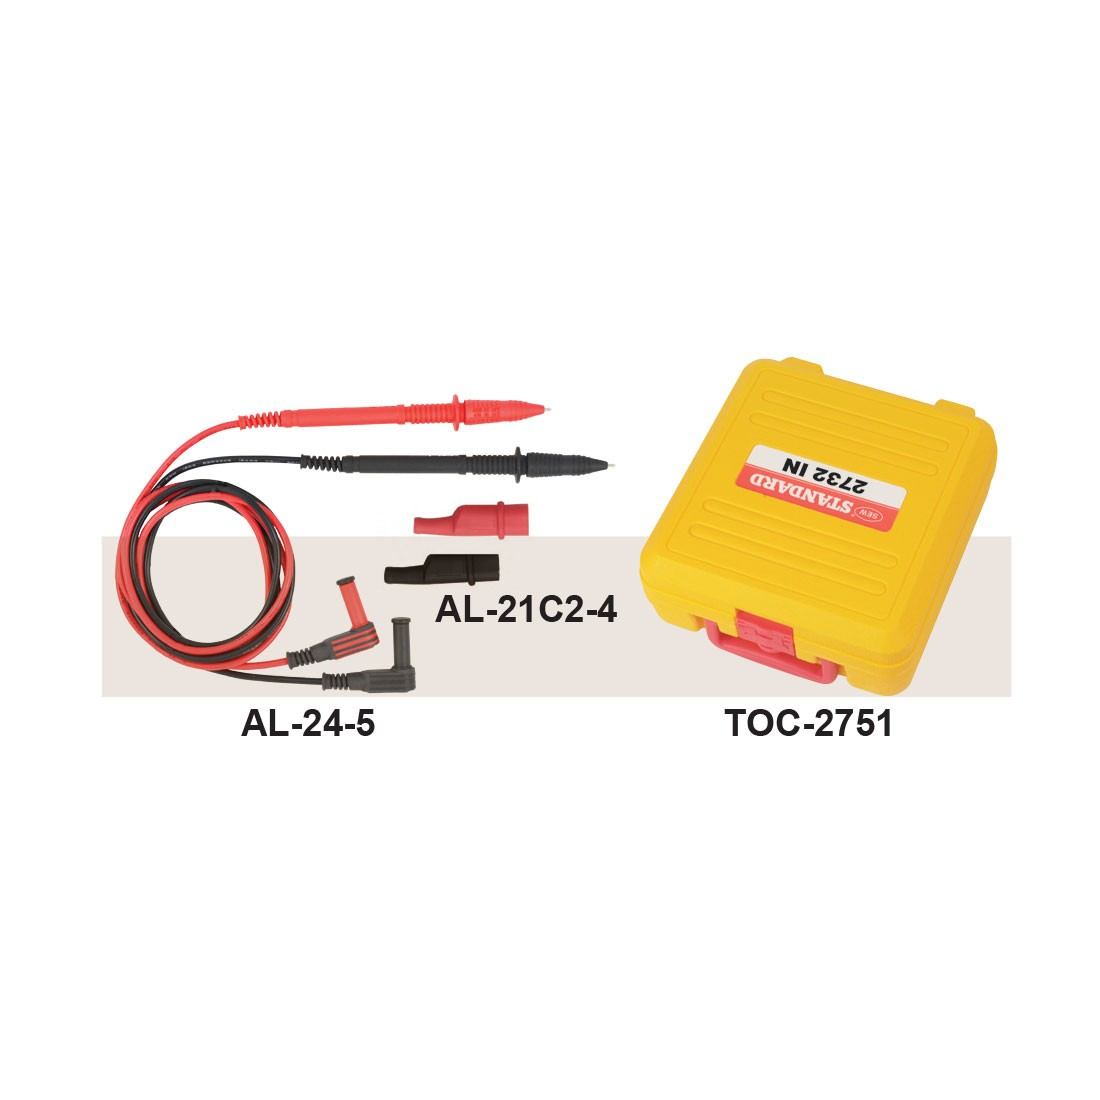 2732IN Analogue (1kV below) Insulation Tester